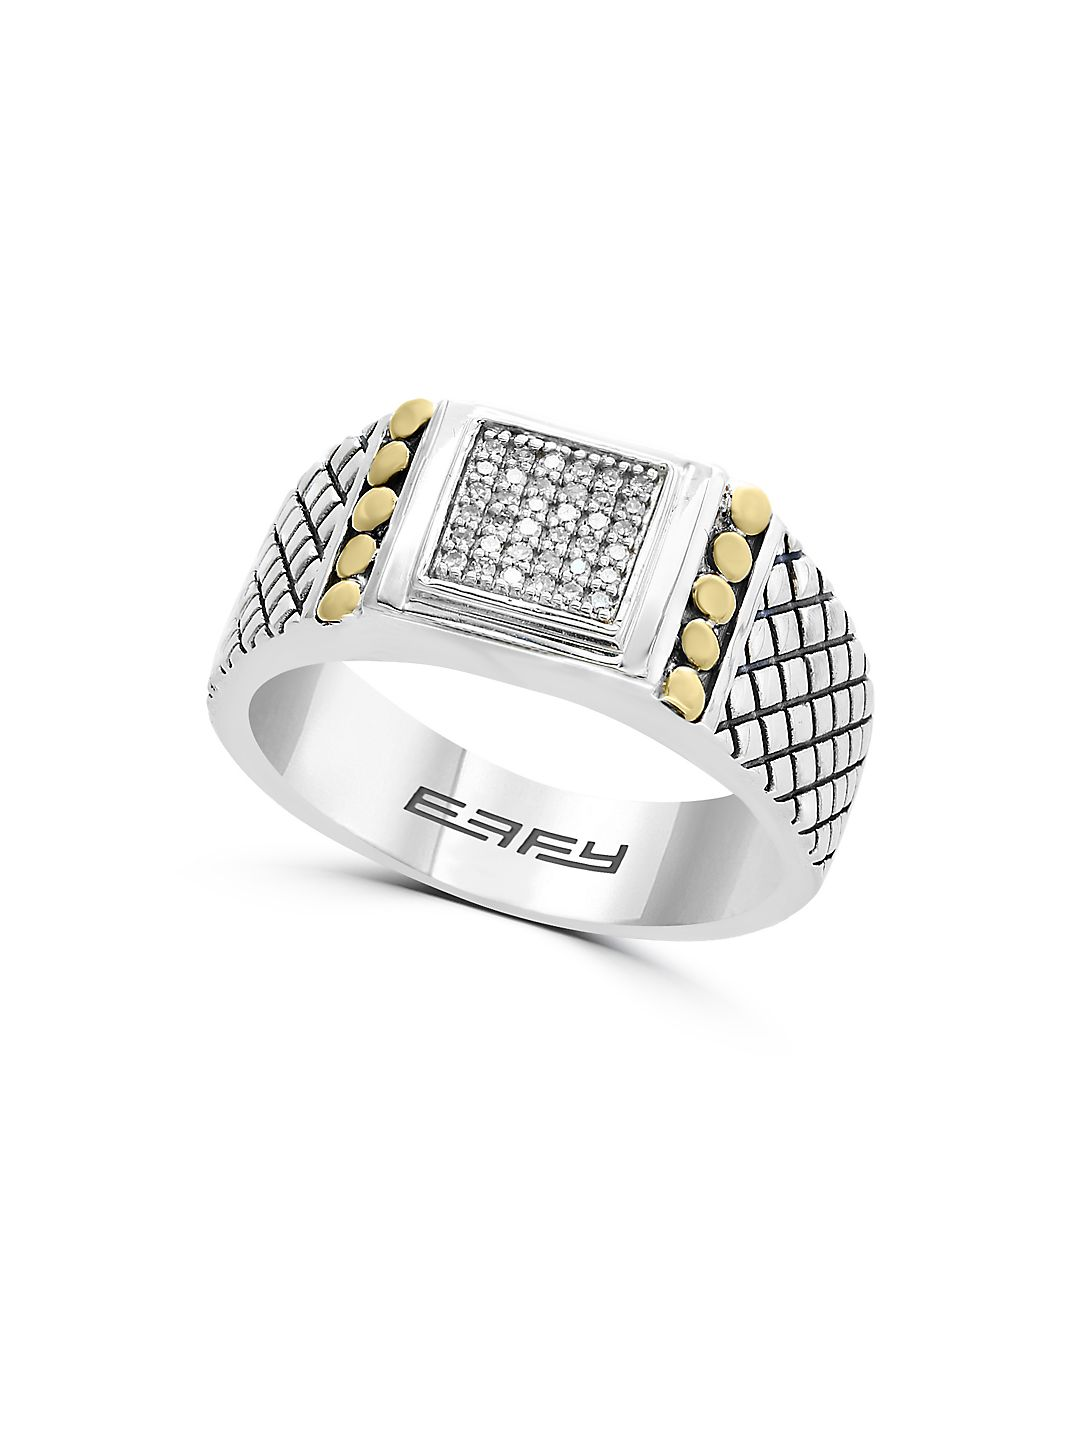 Gento Diamond, 18K Yellow Gold and Sterling Silver Ring